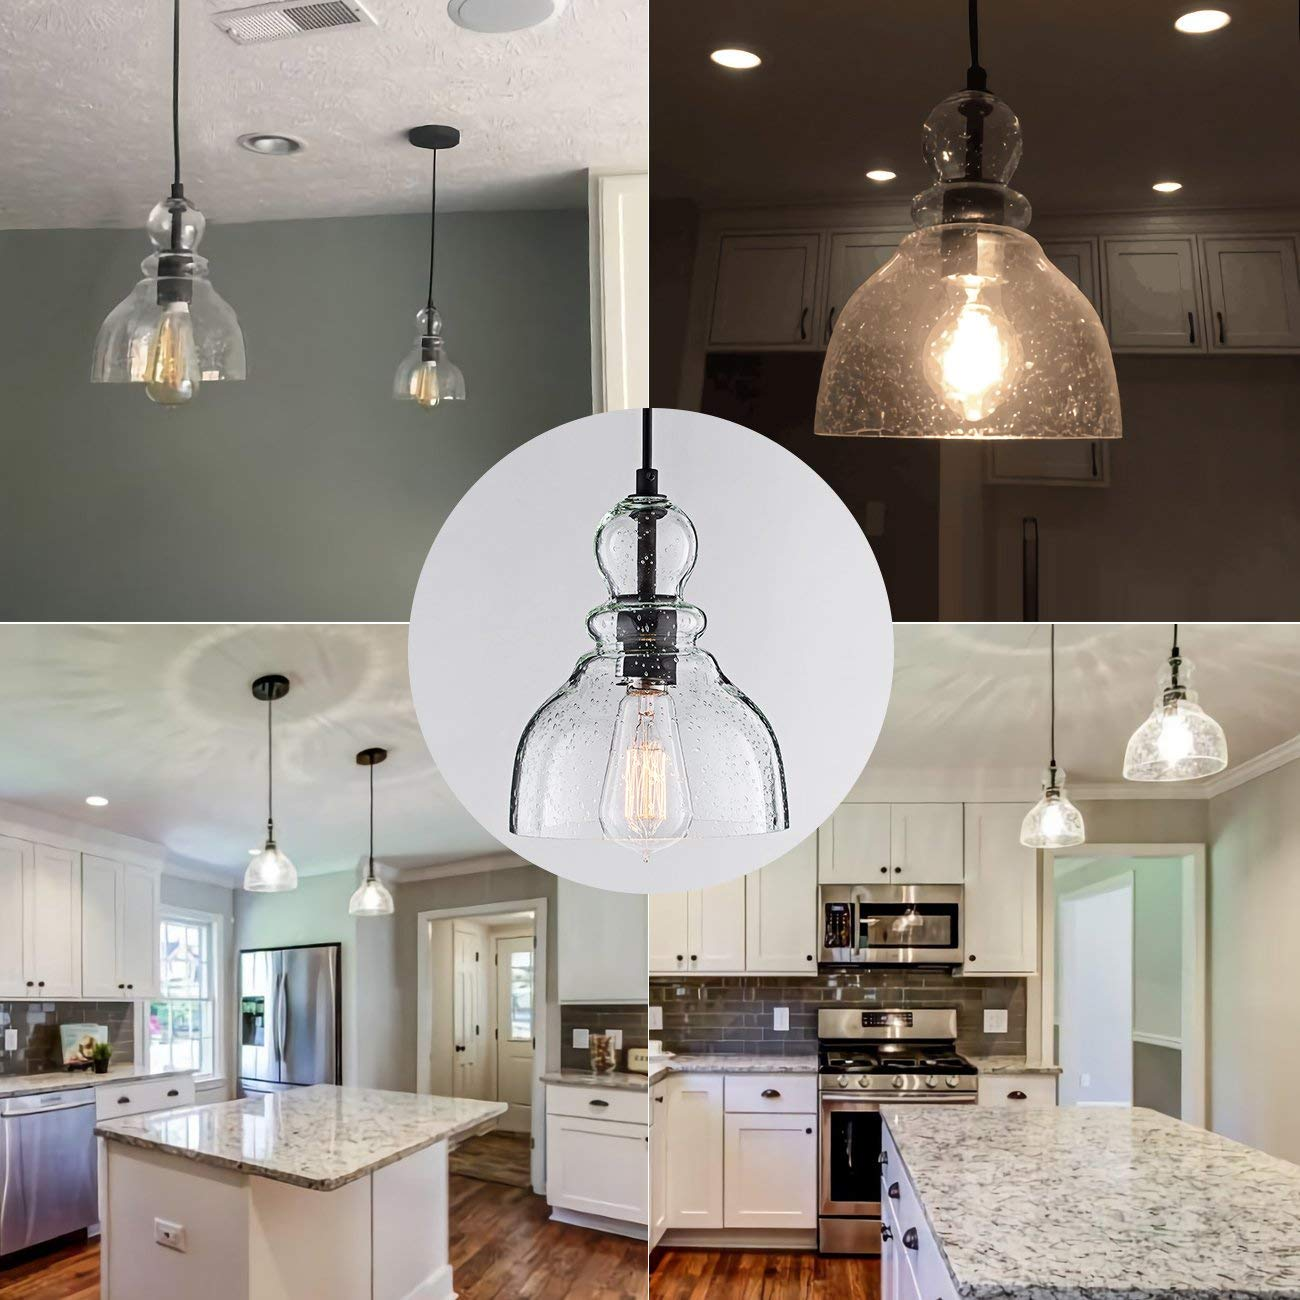 Lanros Industrial Mini Pendant Lighting with Handblown Clear Seeded Glass Shade, Adjustable Edison Farmhouse Kitchen Lamp for Kitchen Island, Restaurants, Hotels and Shops, 1-Pack by LANROS (Image #8)